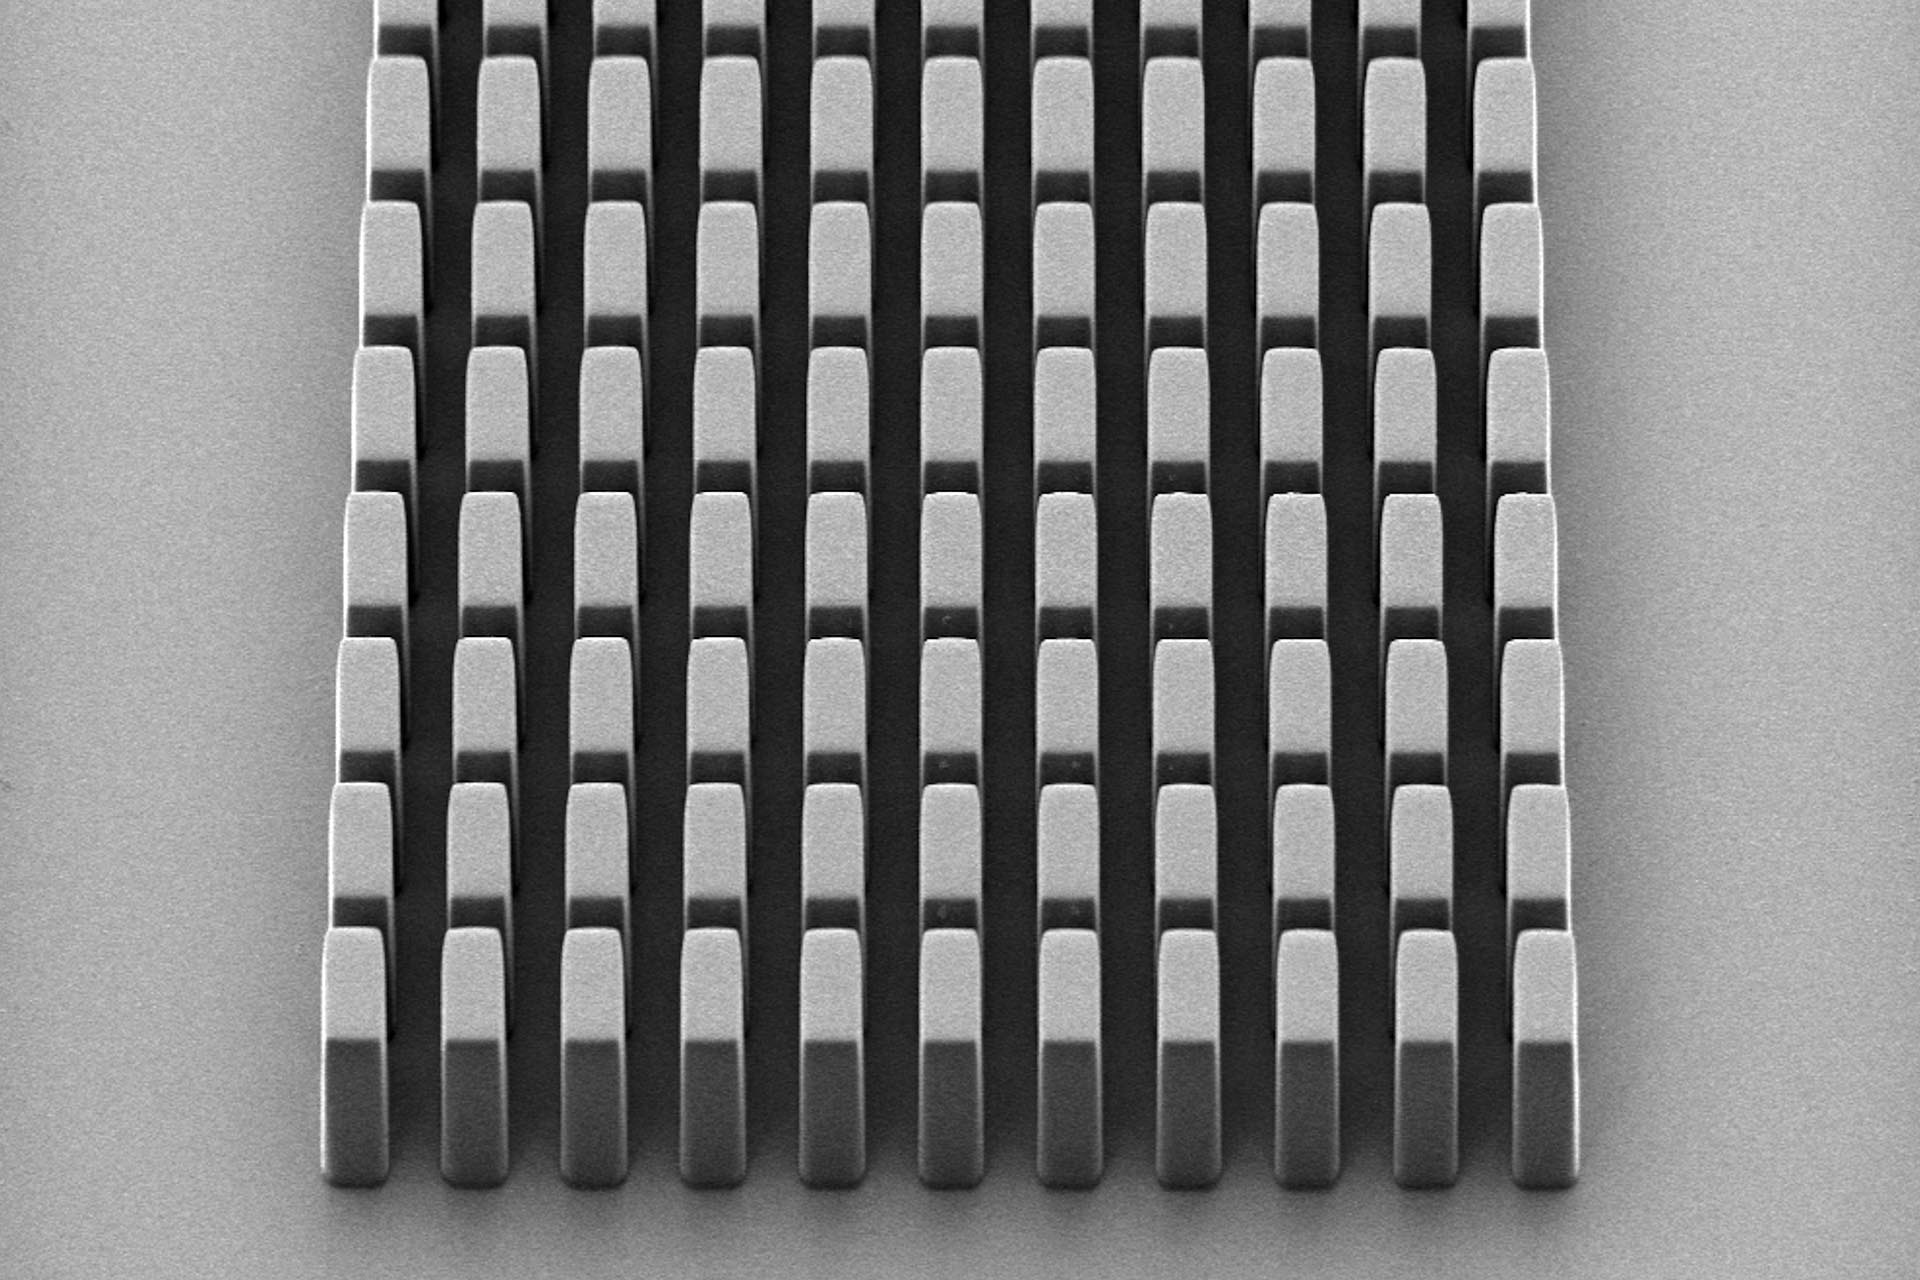 Example structure of rectangular pillars patterned in 25 25 µm of SU-8.